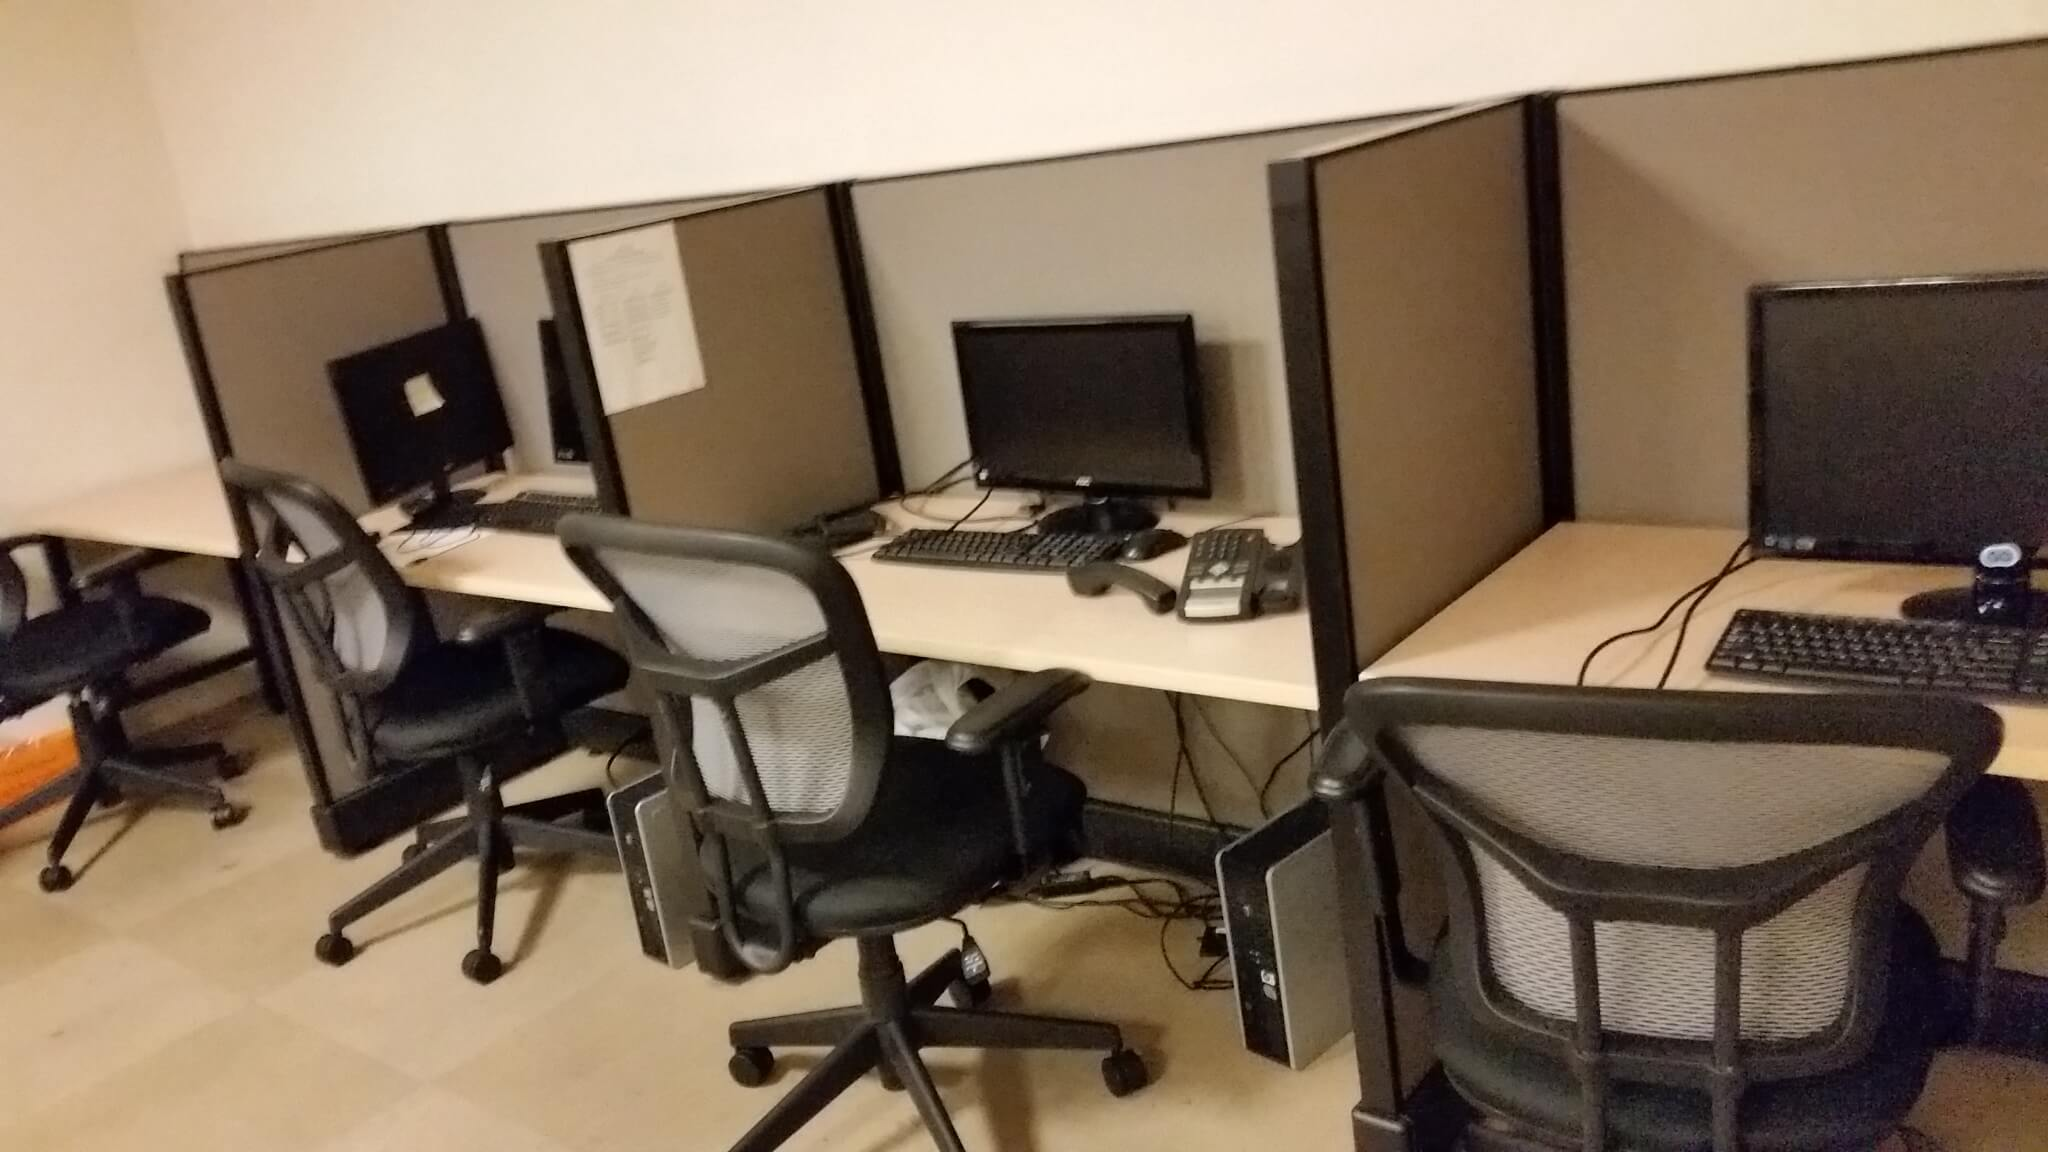 herman miller used office chairs white desk with chair call center furniture - cubicles